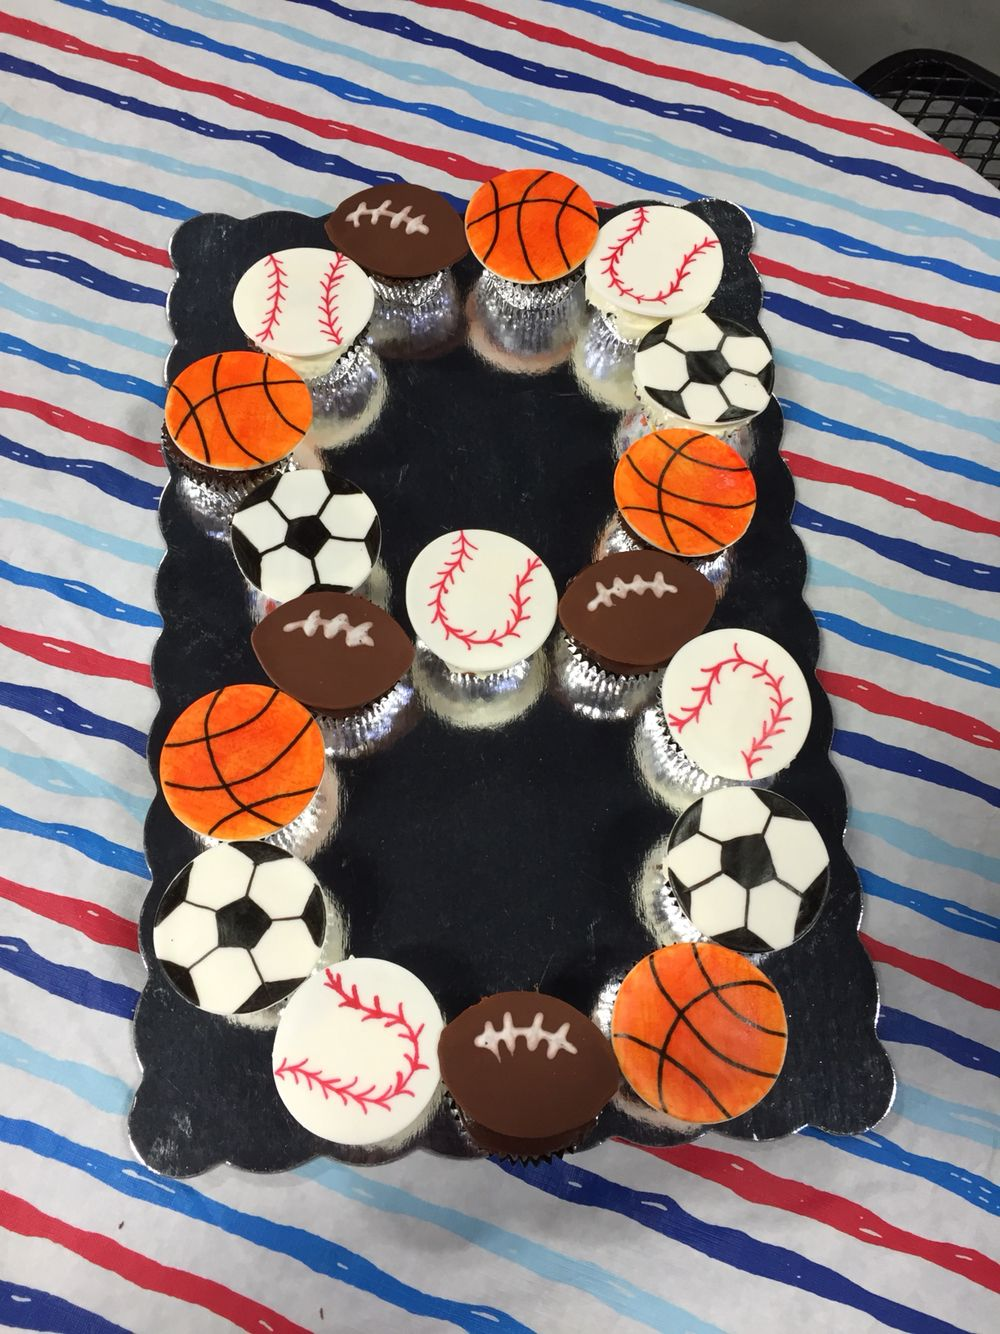 Sports Birthday Cupcake Number Baseball Football Basketball Soccer Origami Dog Diagram Group Picture Image By Tag Keywordpictures Done On Fondant With Edible Markers